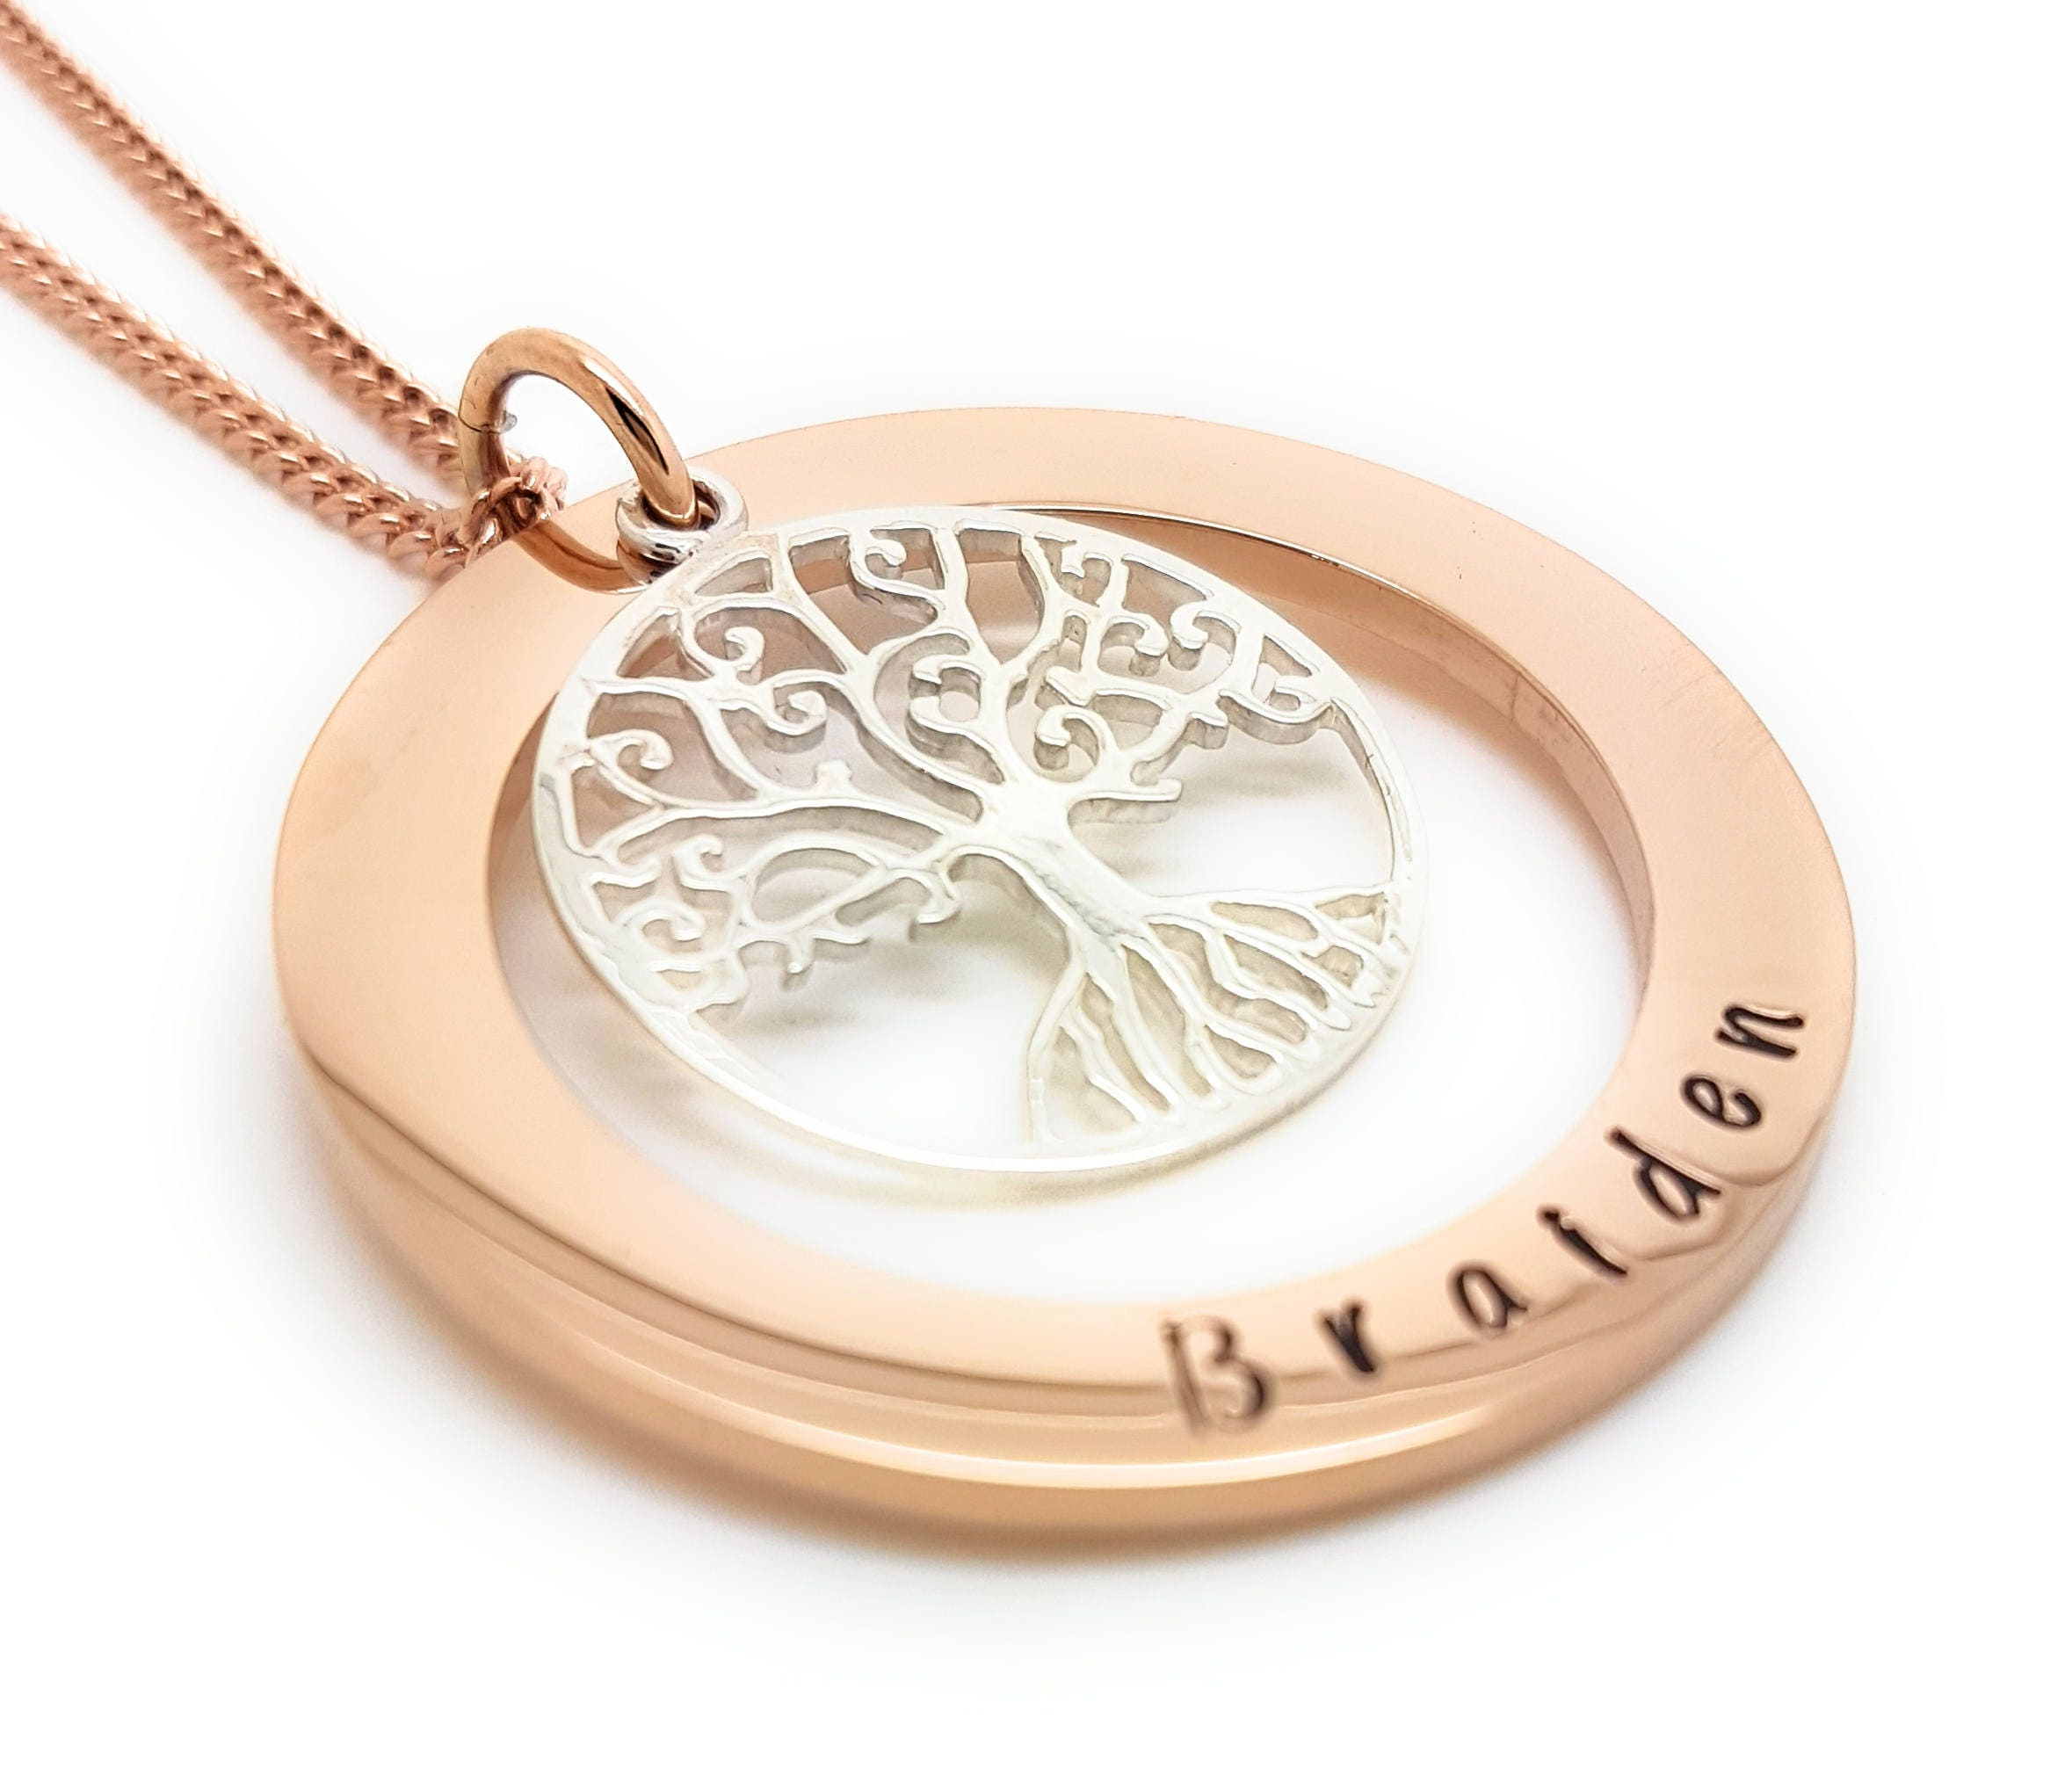 Family names tree of life pendant personalised jewellery hand family names tree of life pendant personalised jewellery hand stamped name necklaces rose gold family name pendants tree life gift australia aloadofball Gallery